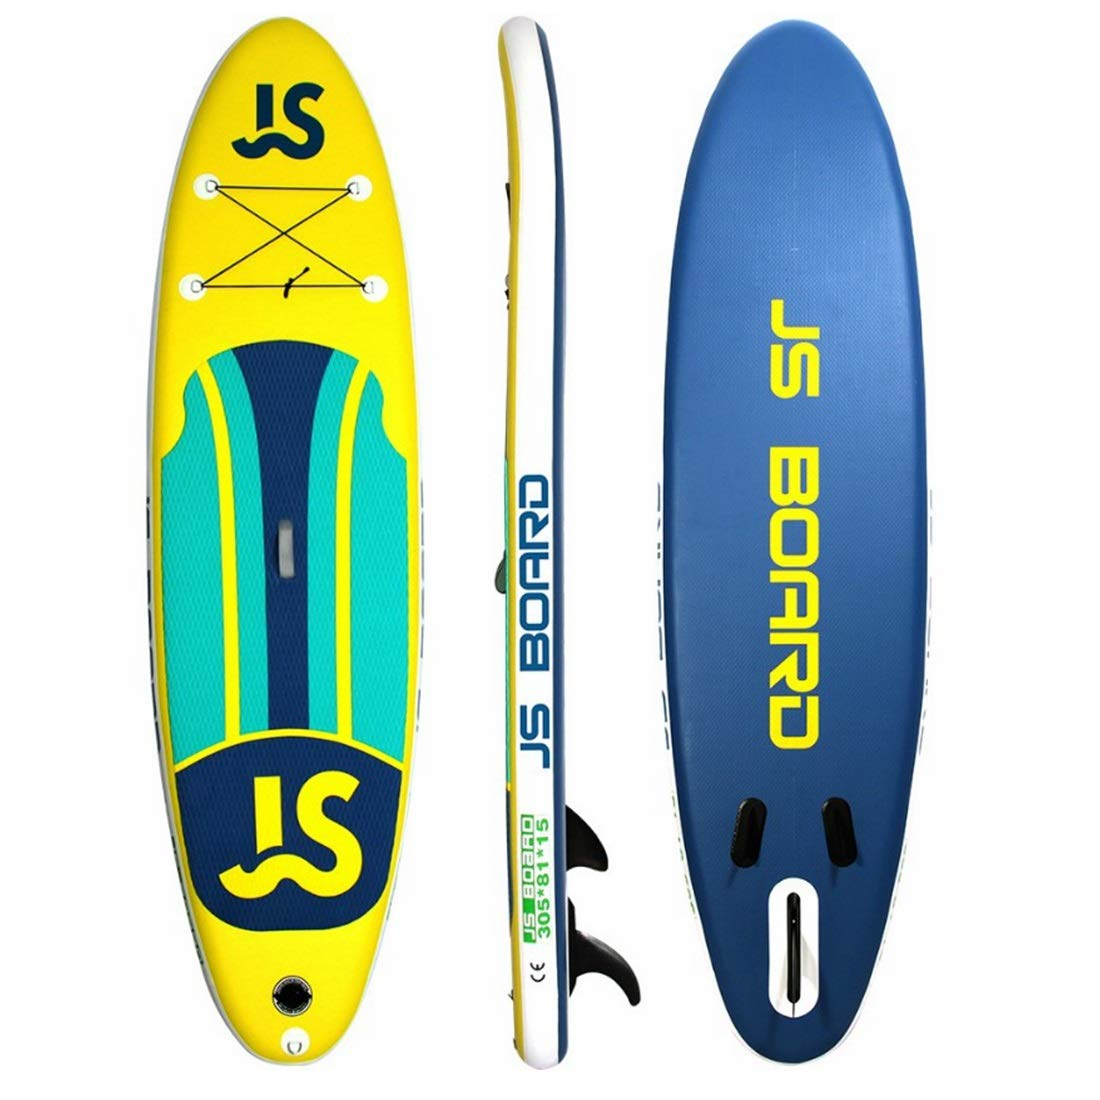 Amazon.com : AUSWIEI 10.9Soft Top Surfboard Inflatable Surfboard Adult SUP Board Paddle Board Package Includes Standard Items (Color : Yellow, ...